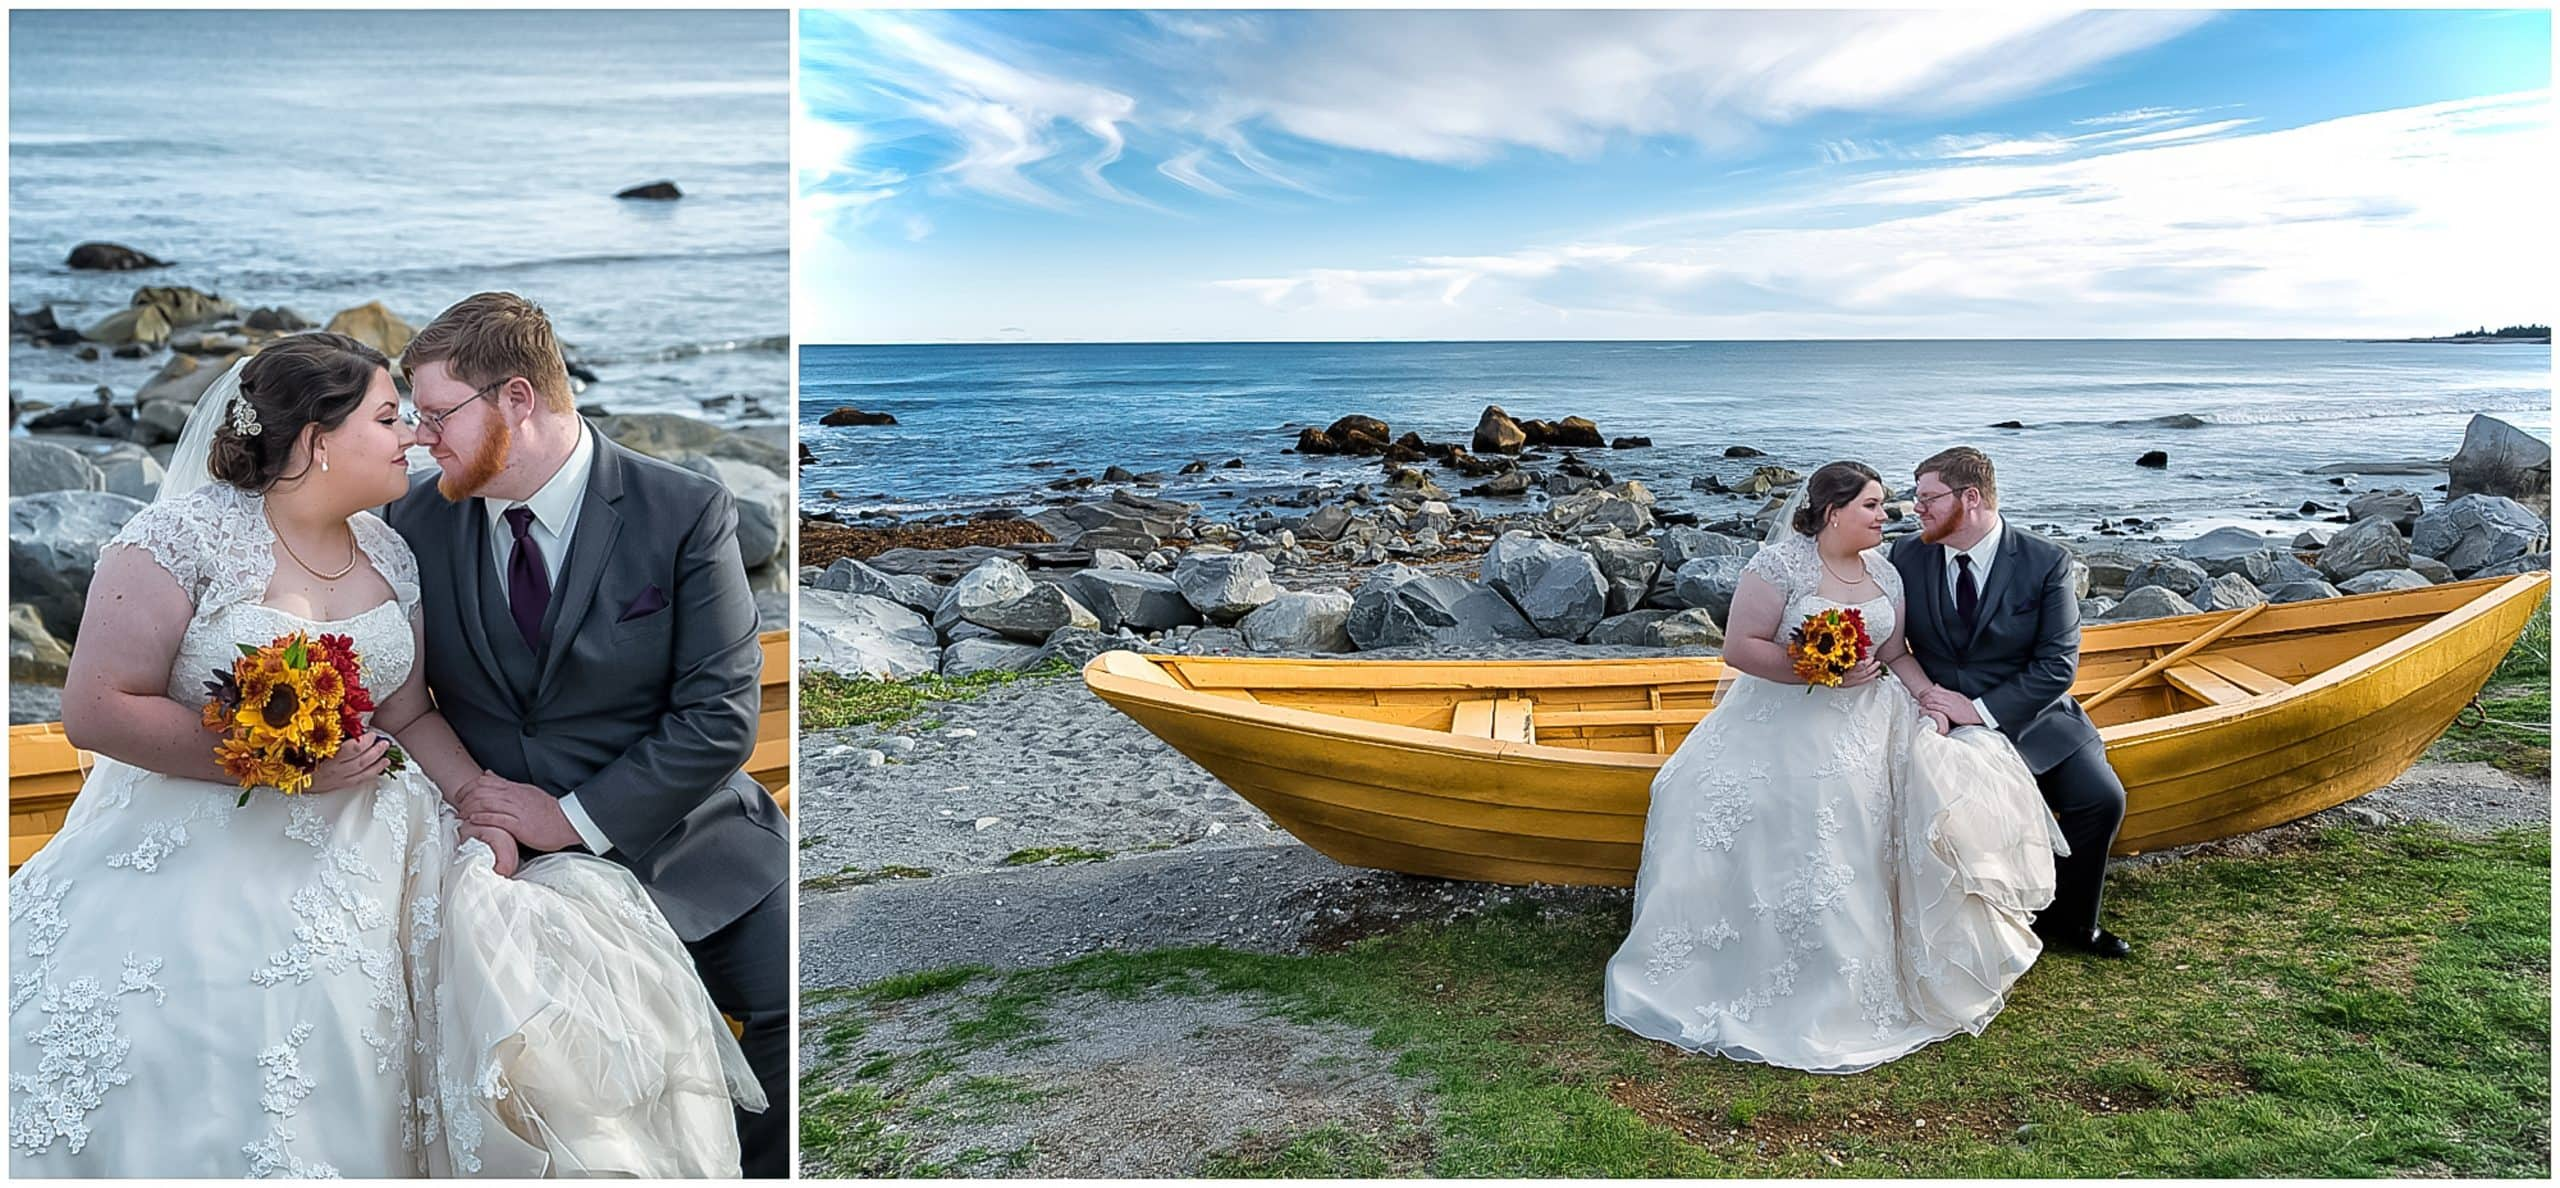 The bride and groom sit on a yellow boat posing for their wedding photos at White Point in NS.